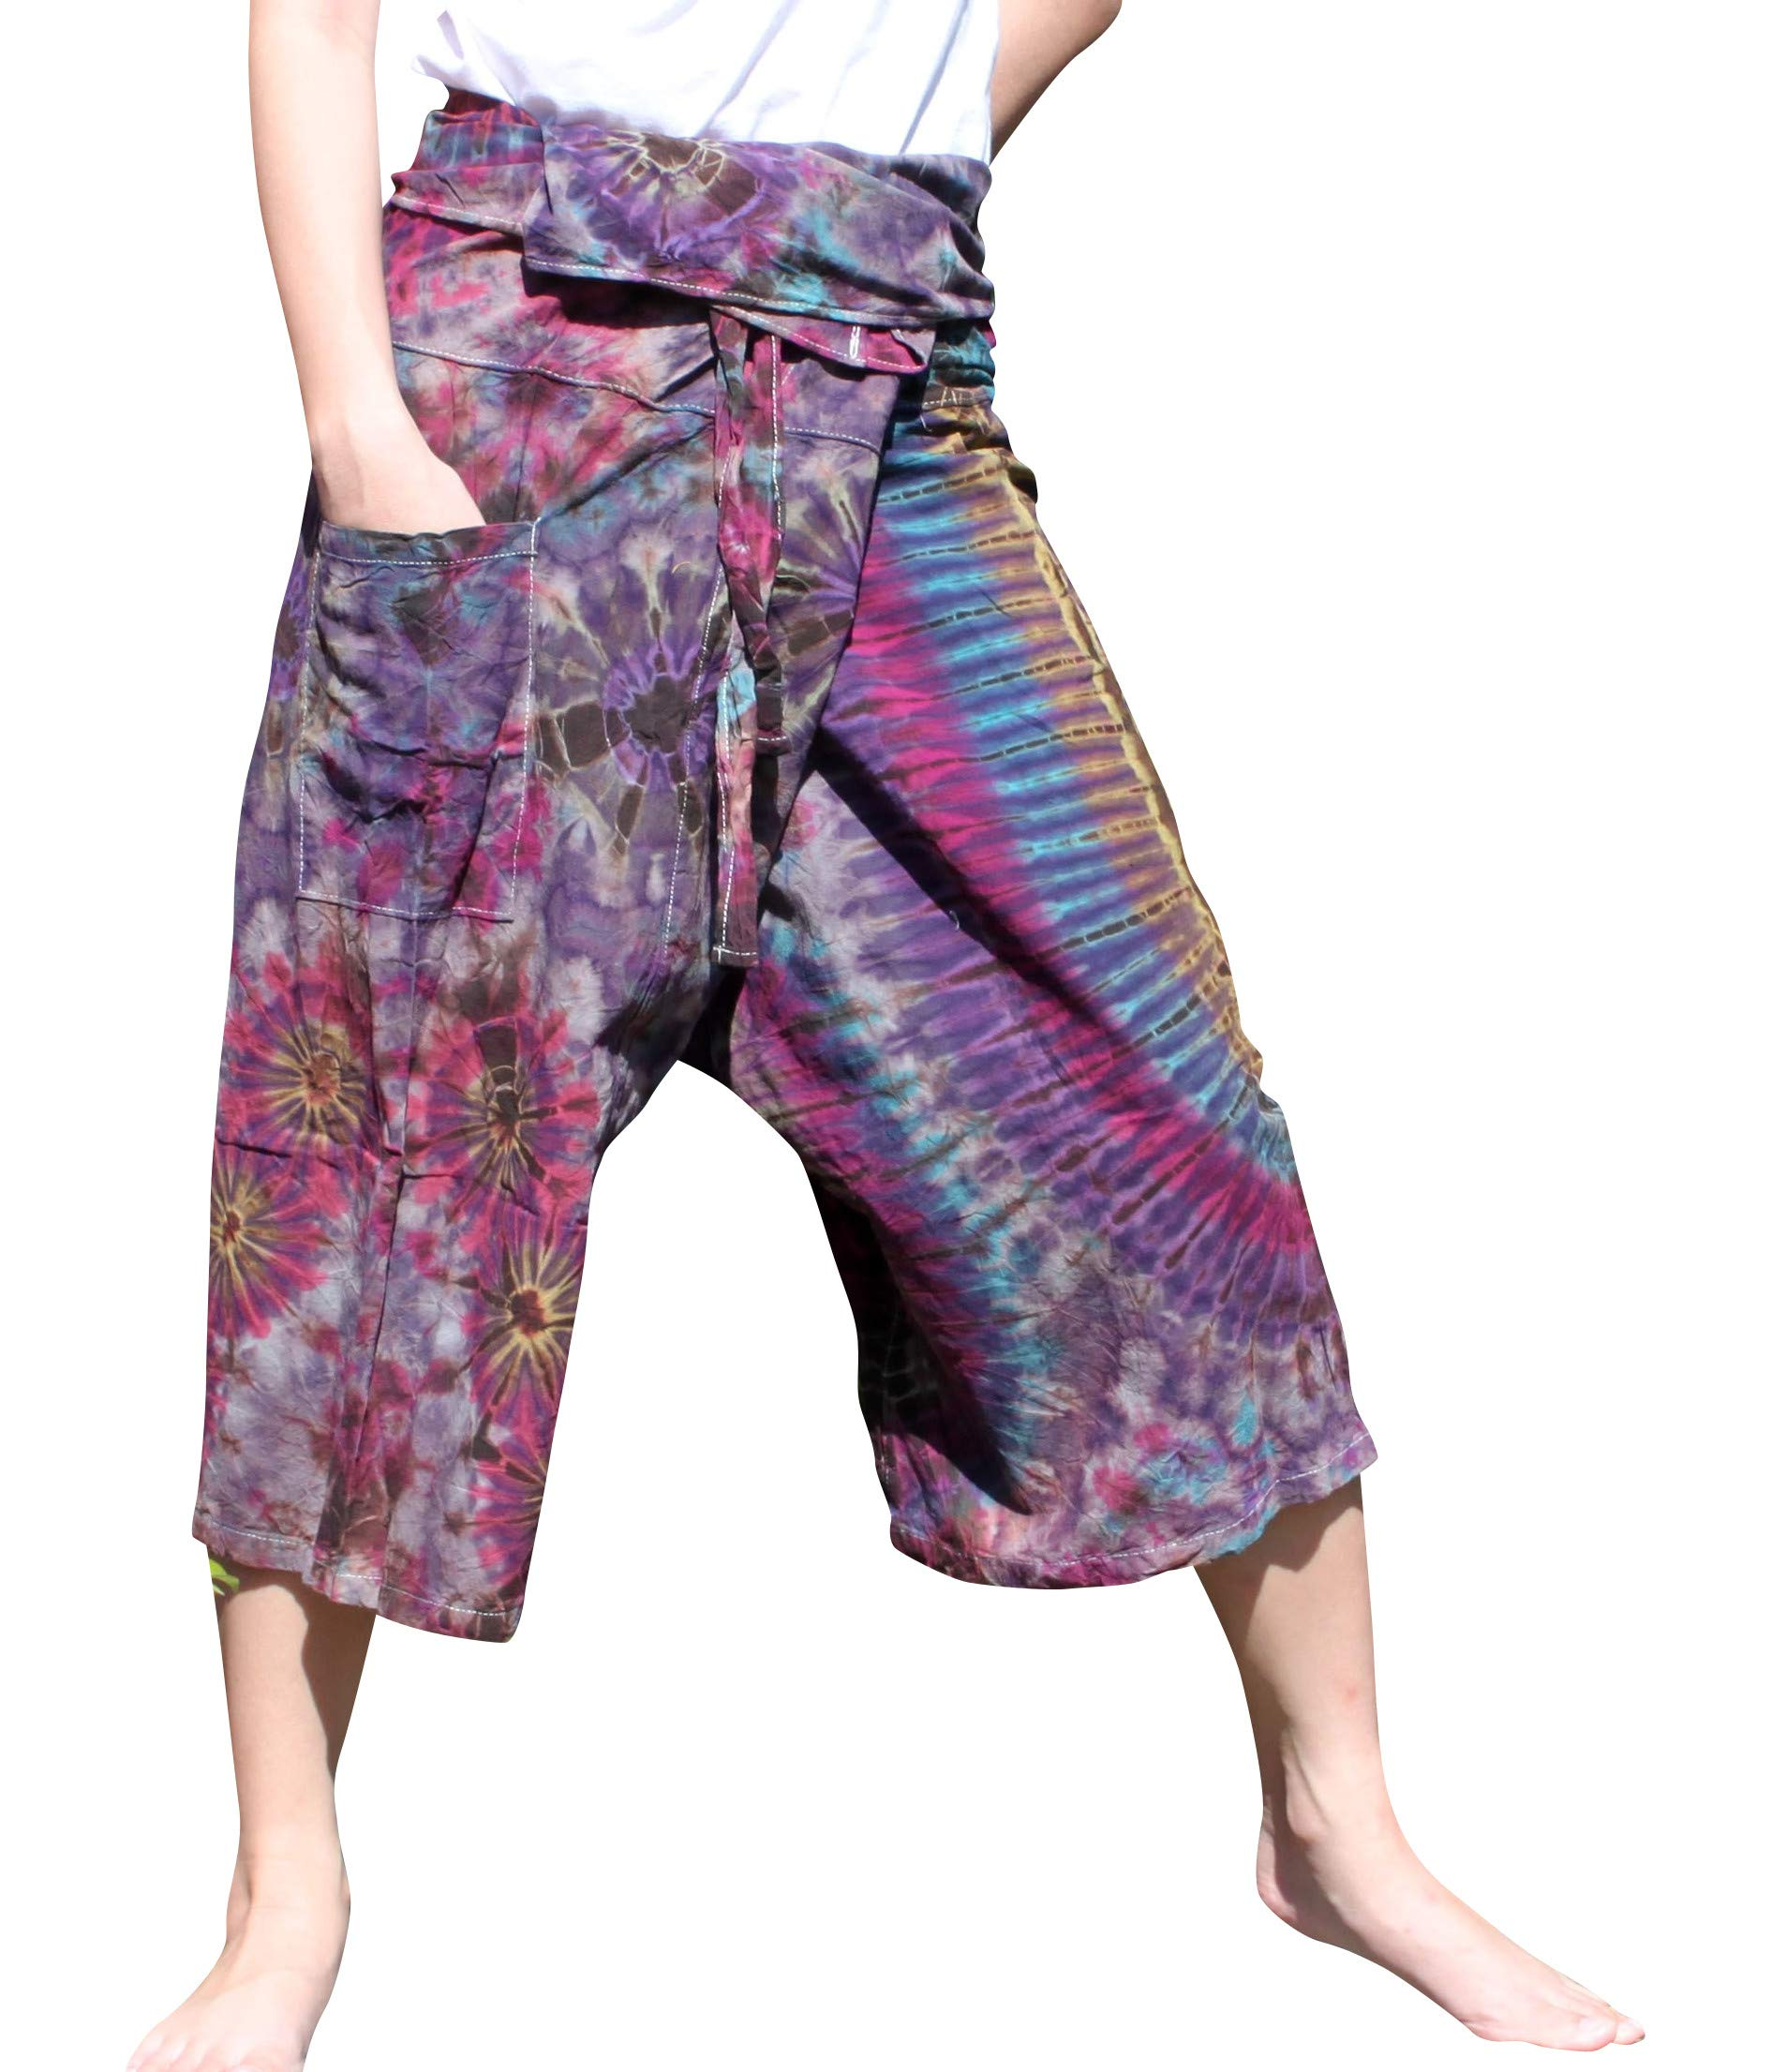 Full Funk Cotton Tie Dyed Natural Colorful Thai Fisherman Wrap 3/4 Leg Pants, Medium, Dark Purple by Full Funk